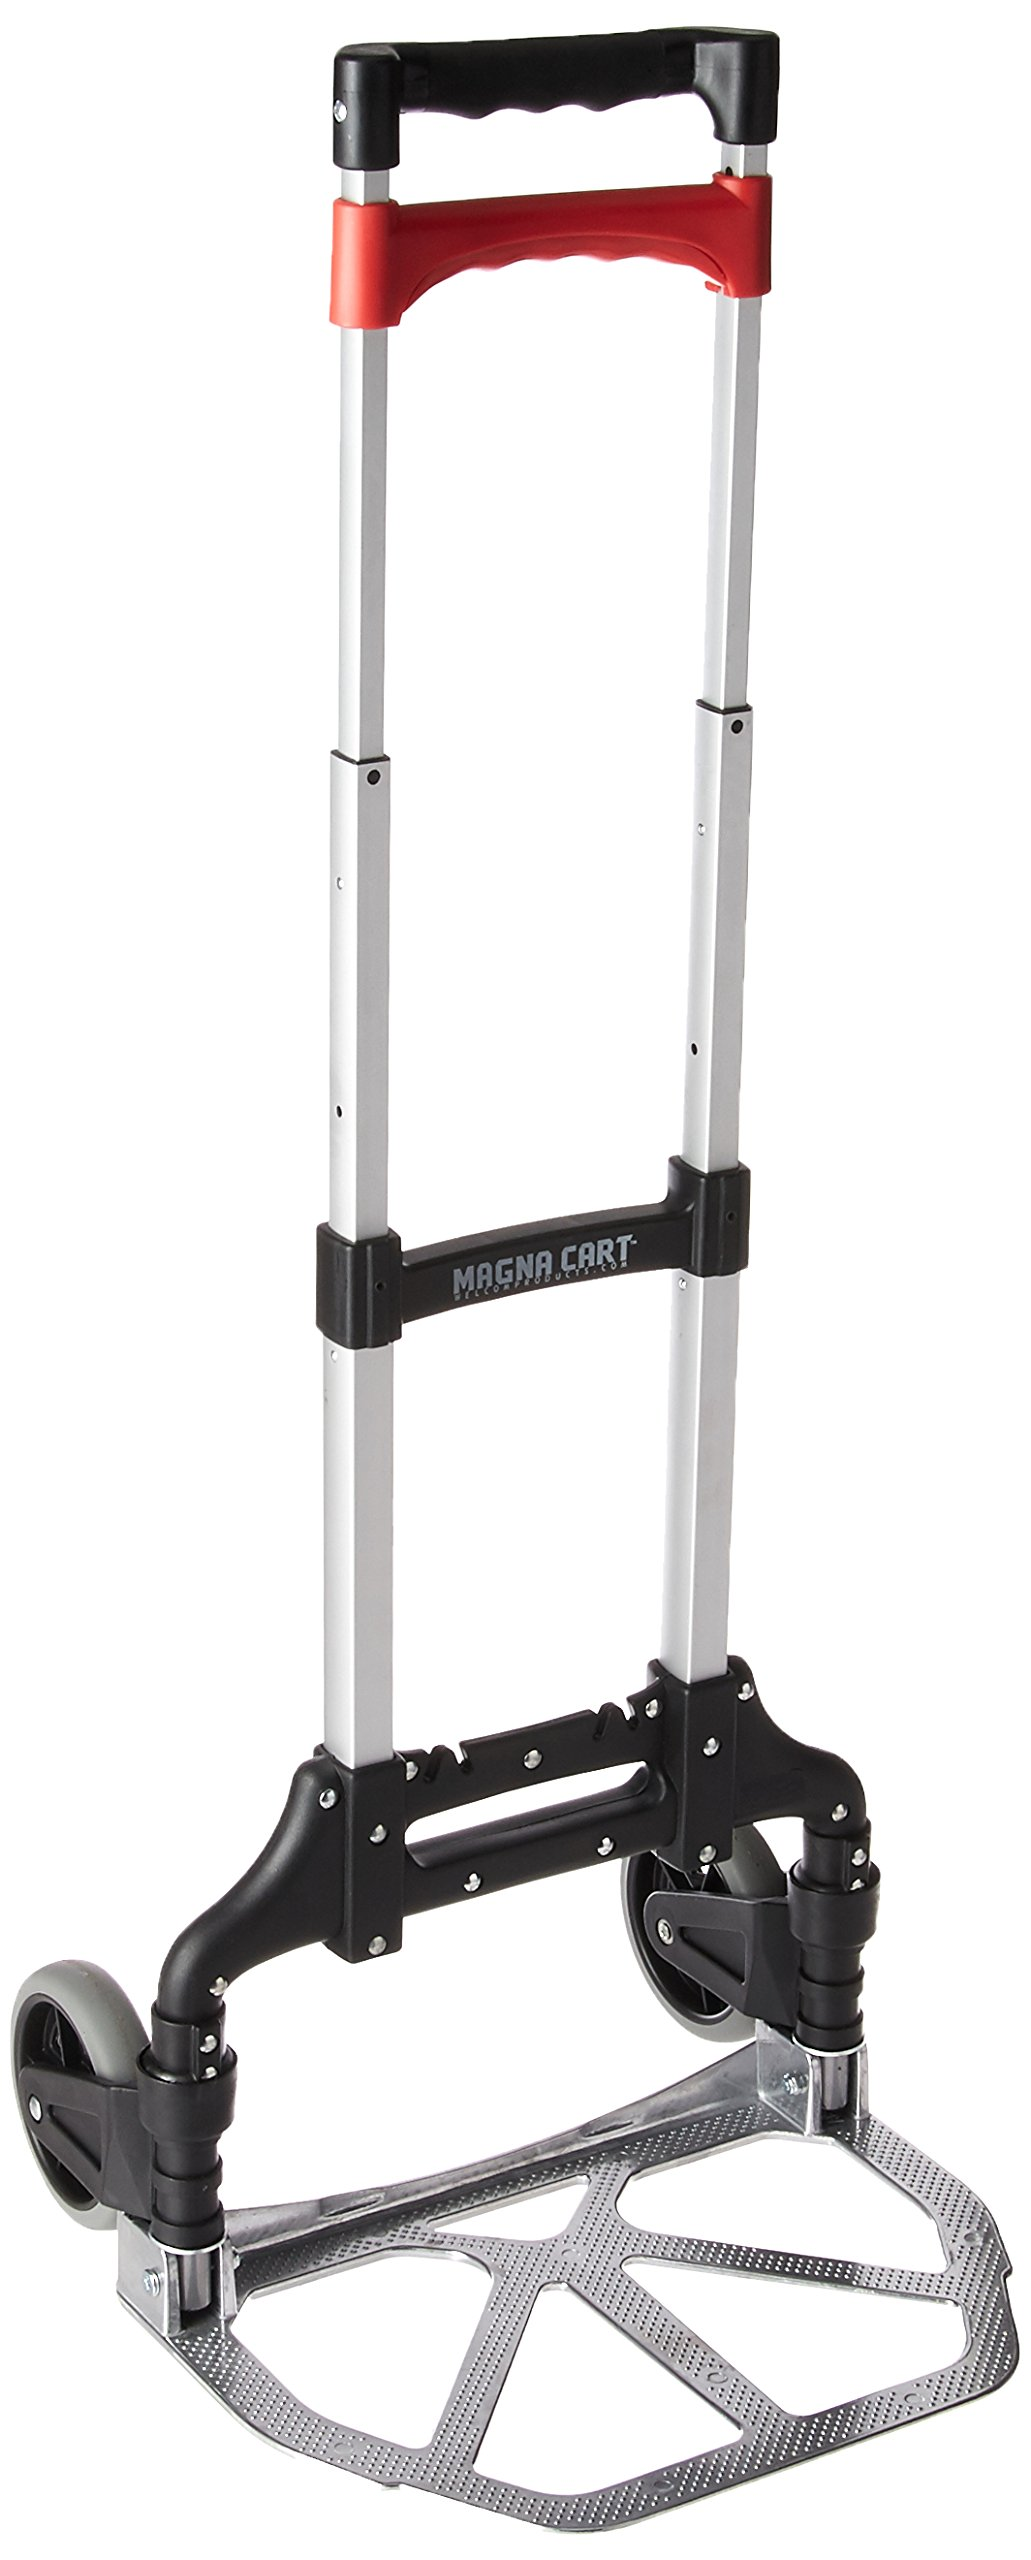 Magna Cart Personal 150 lb Capacity Aluminum Folding Hand Truck (Black/Red) by Welcom